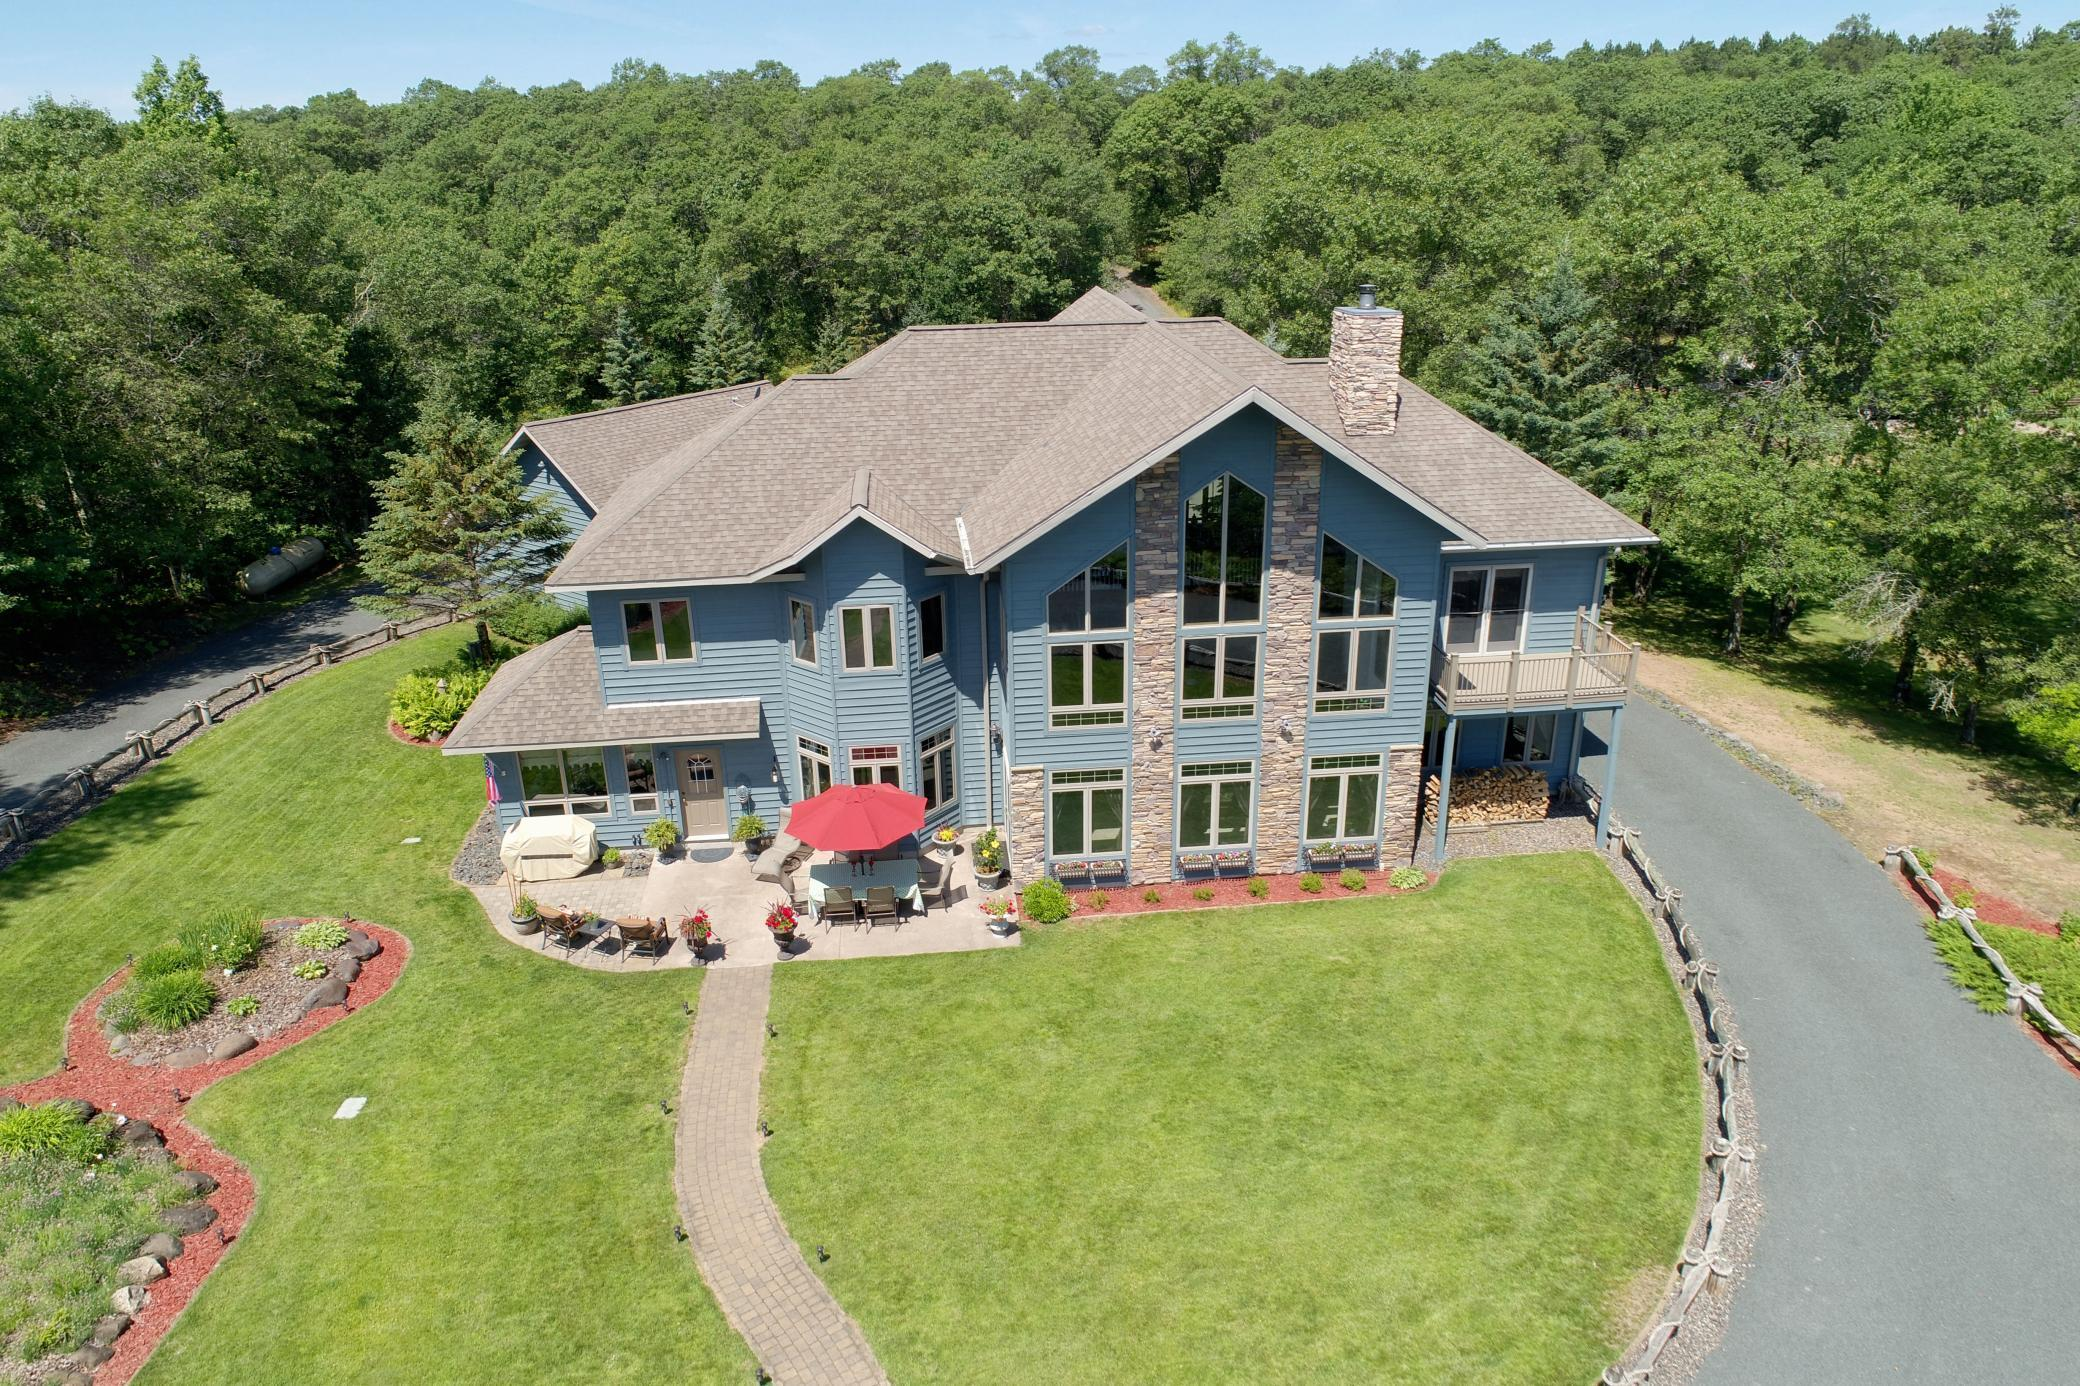 16244 Taylor Property Photo - Wascott, WI real estate listing